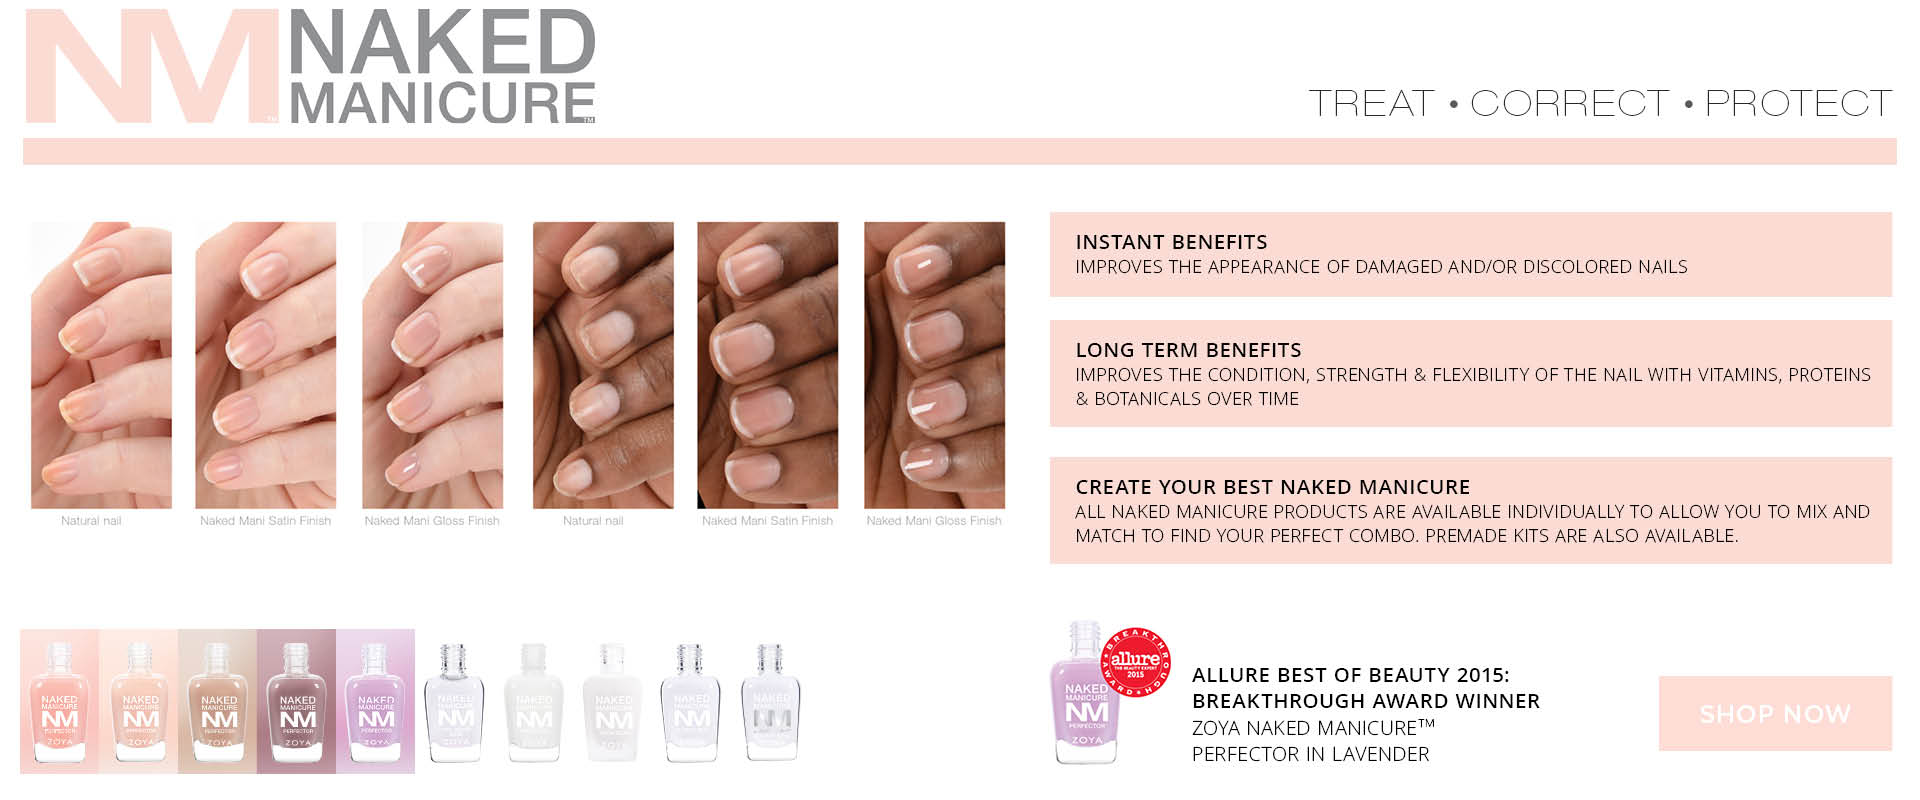 naked manicure home page